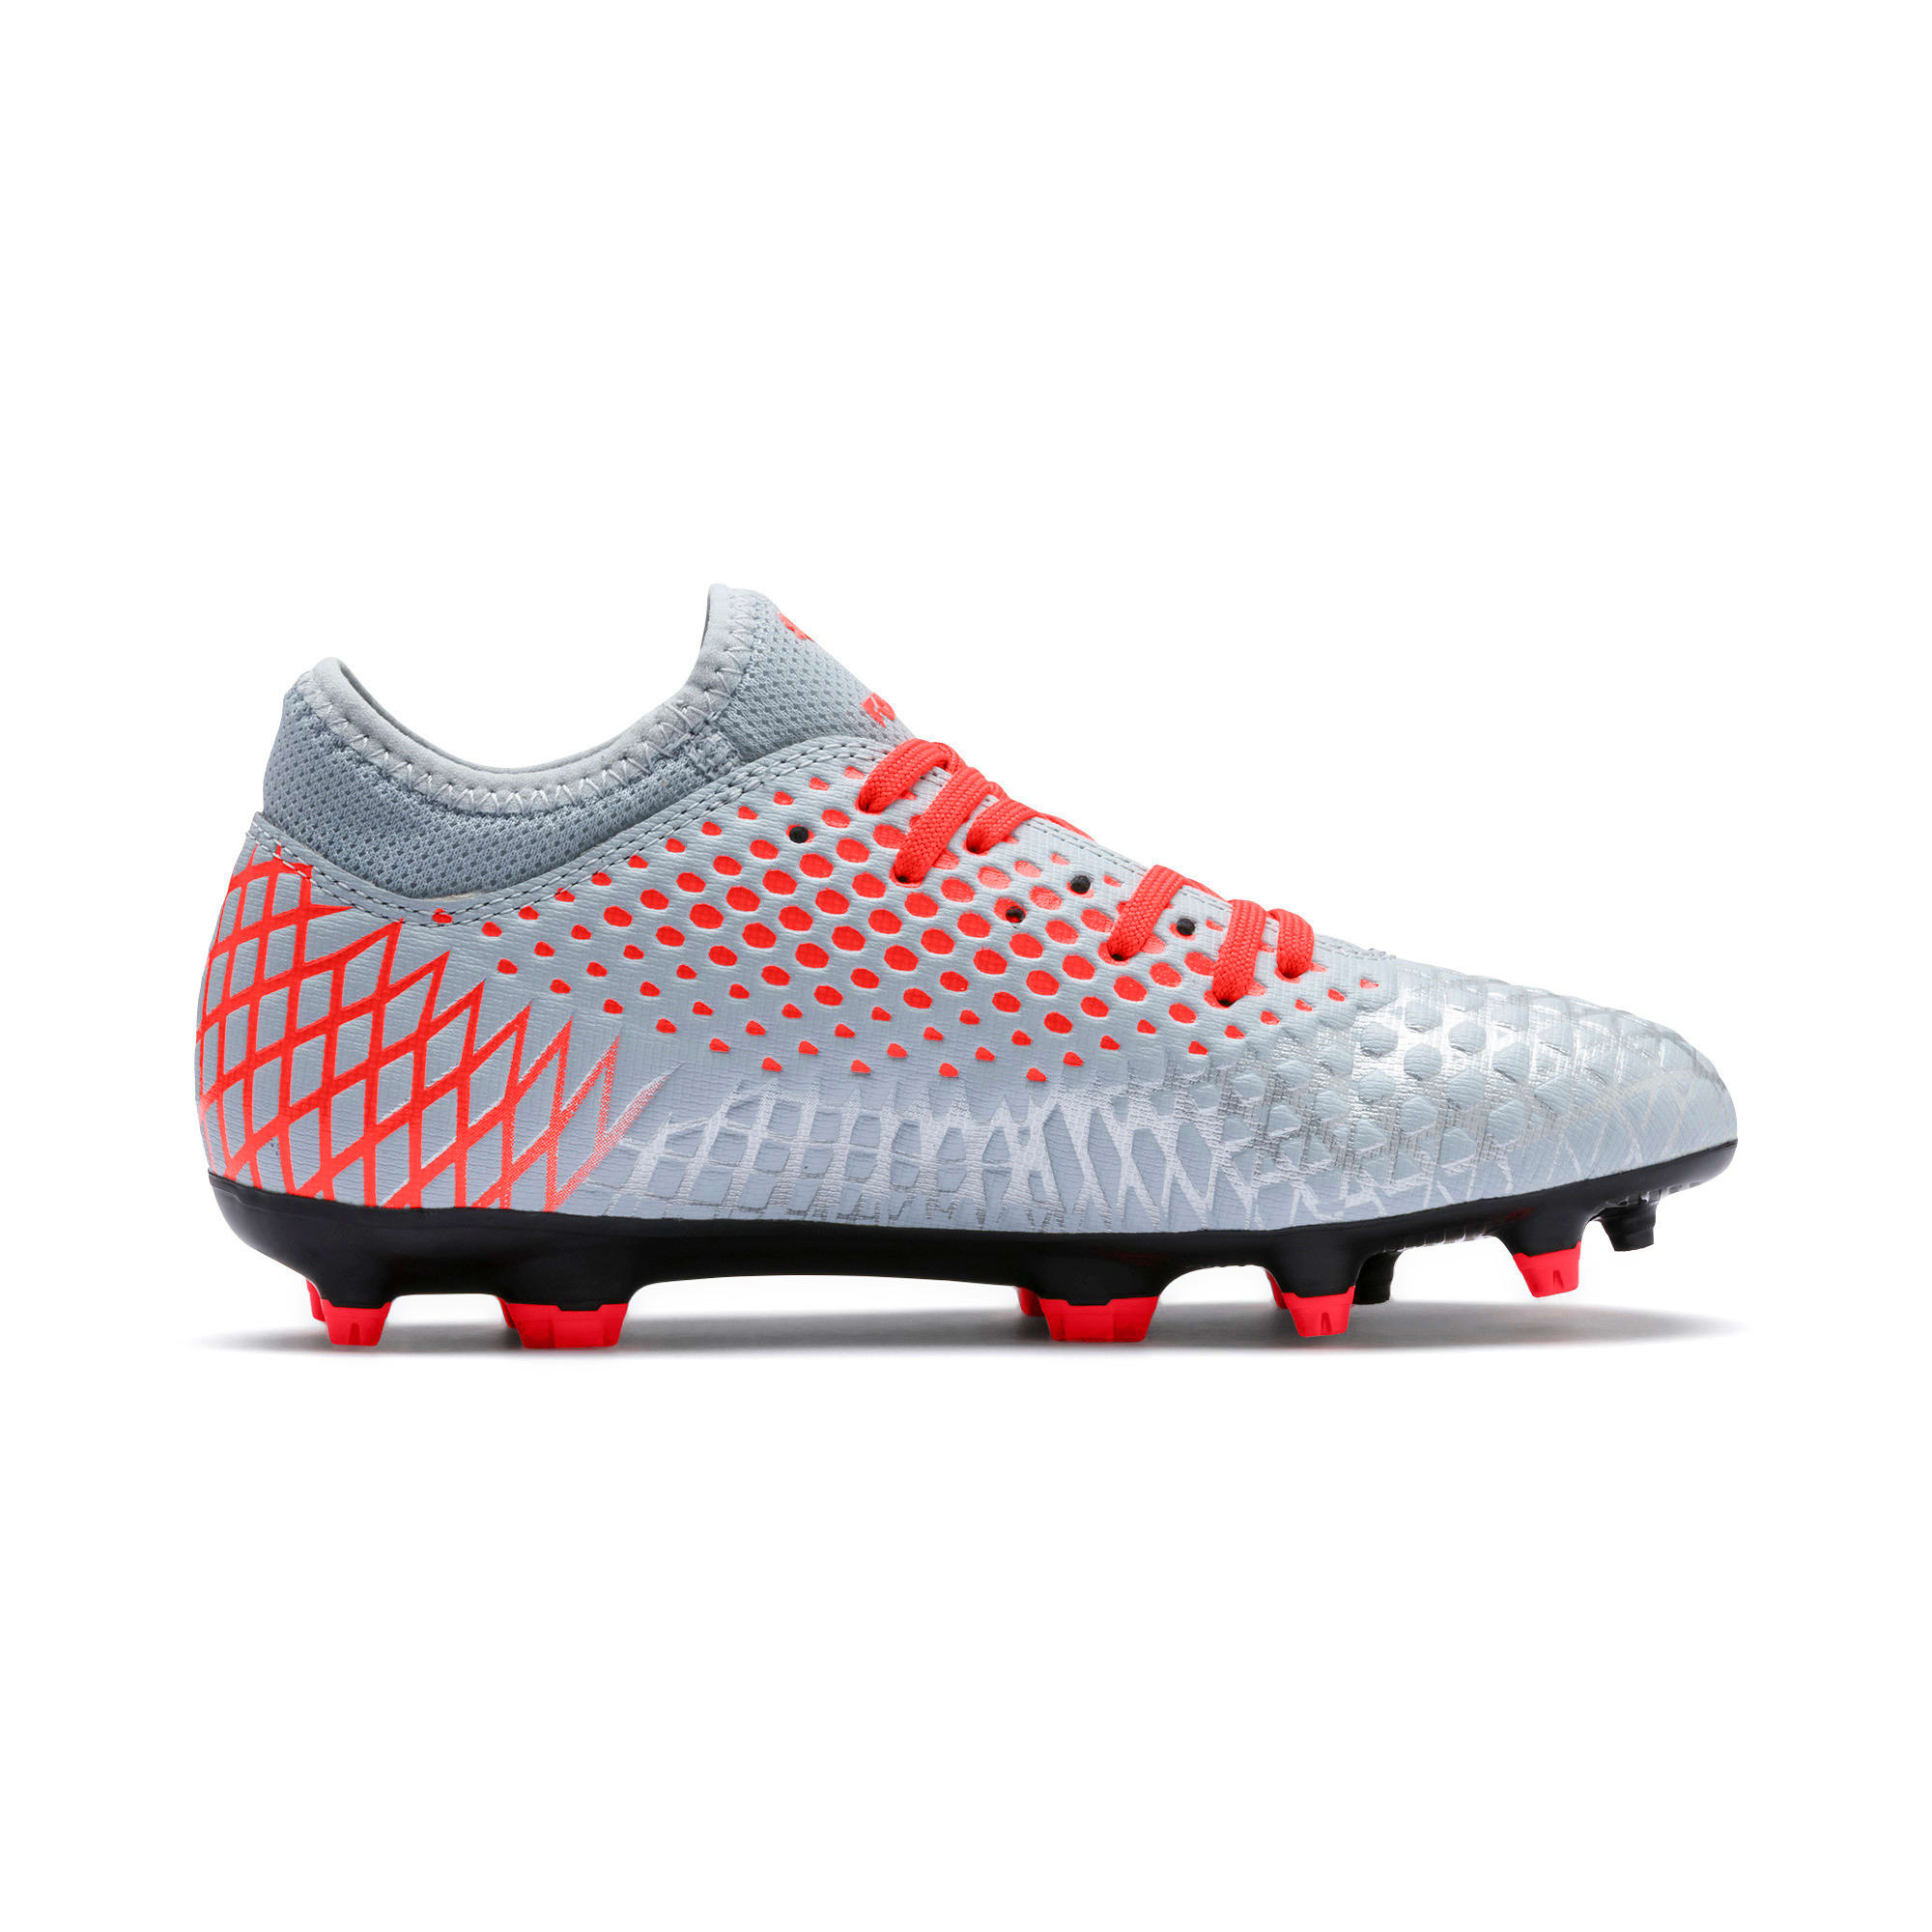 Thumbnail 5 of FUTURE 4.4 Youth Football Boots, Glacial Blue-Nrgy Red, medium-IND